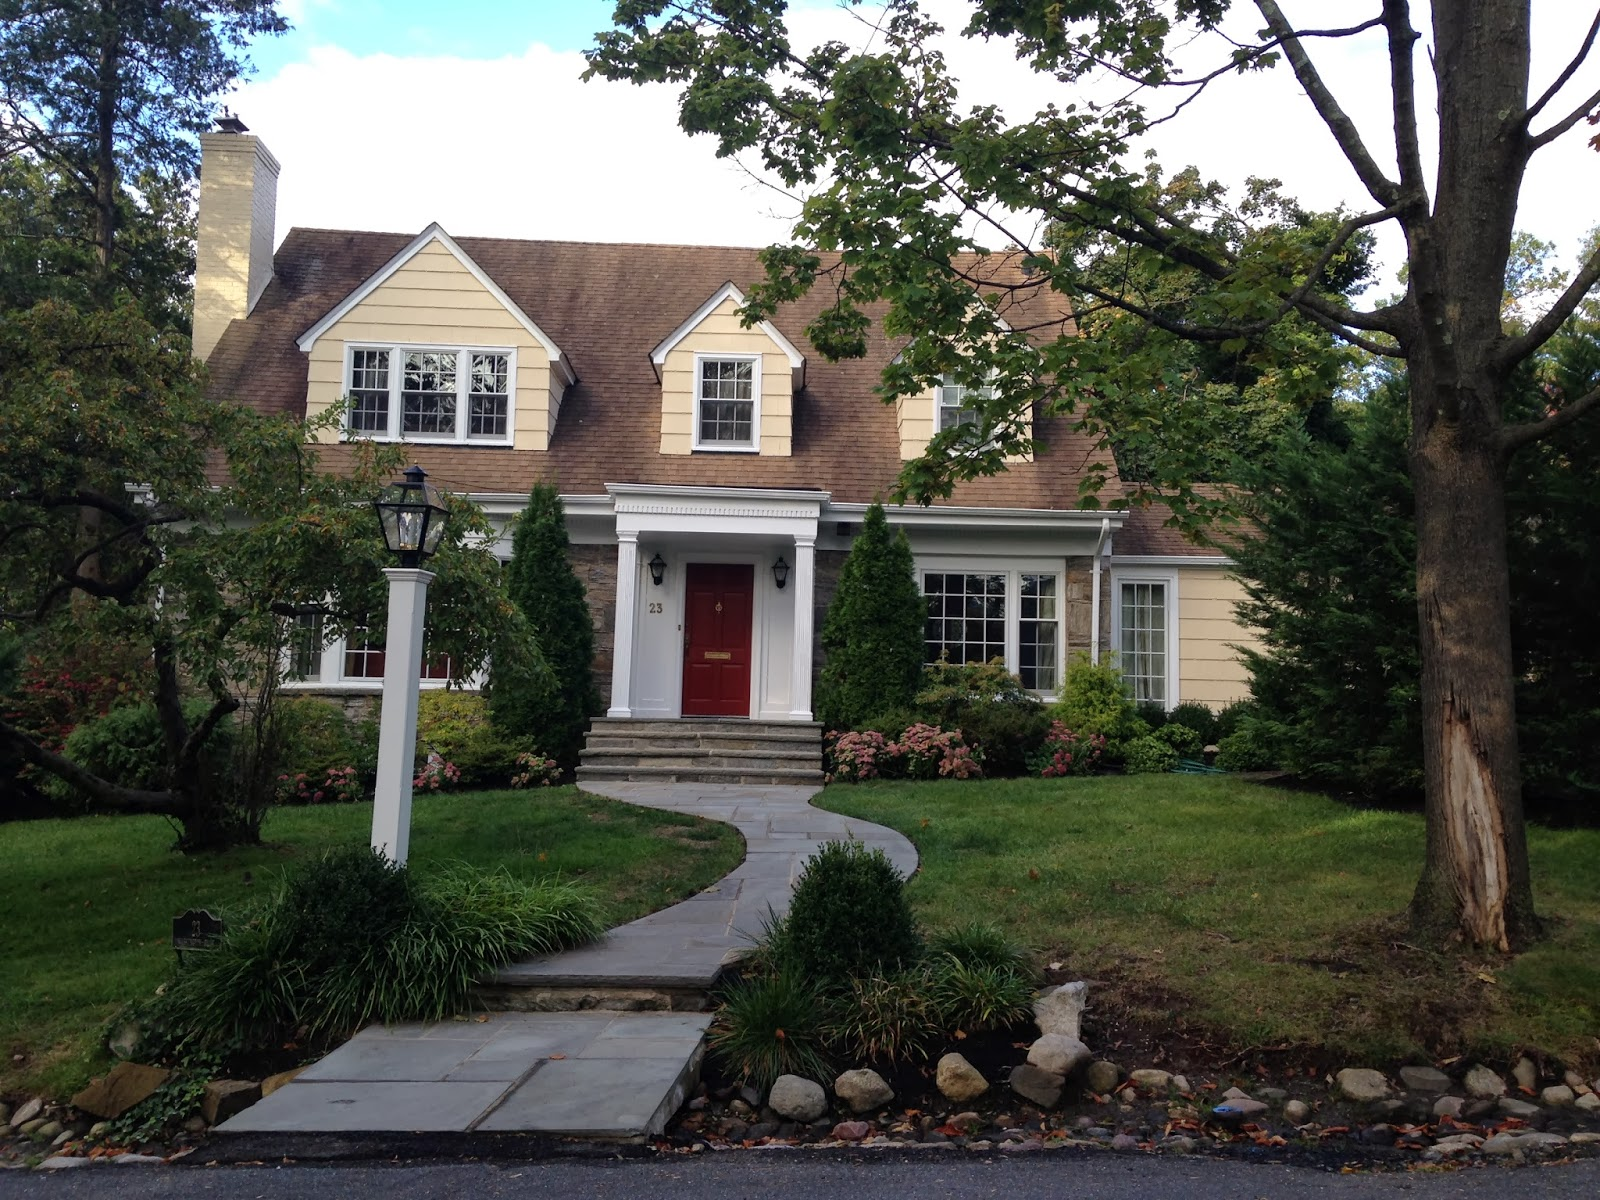 finding a home in new jersey home search in maplewood south orange rh njexpatguru blogspot com  homes for sale in maplewood nj weichert